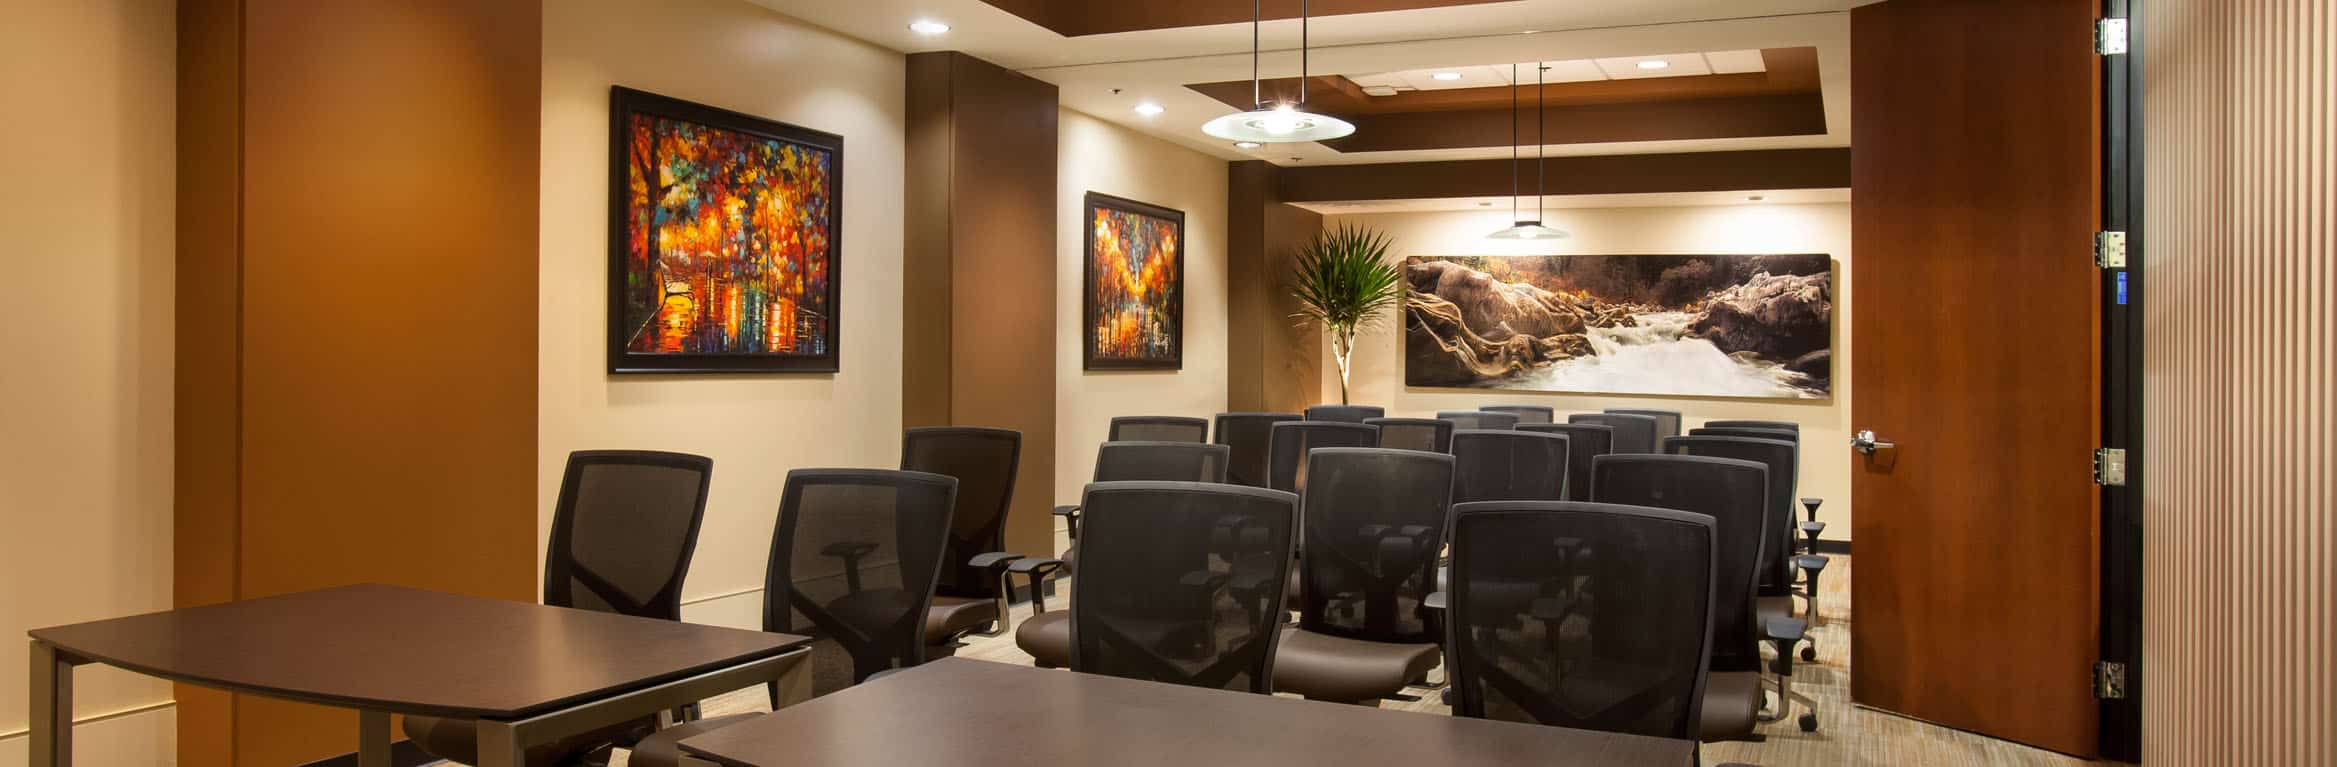 GOLD RIVER OFFICE SPACE